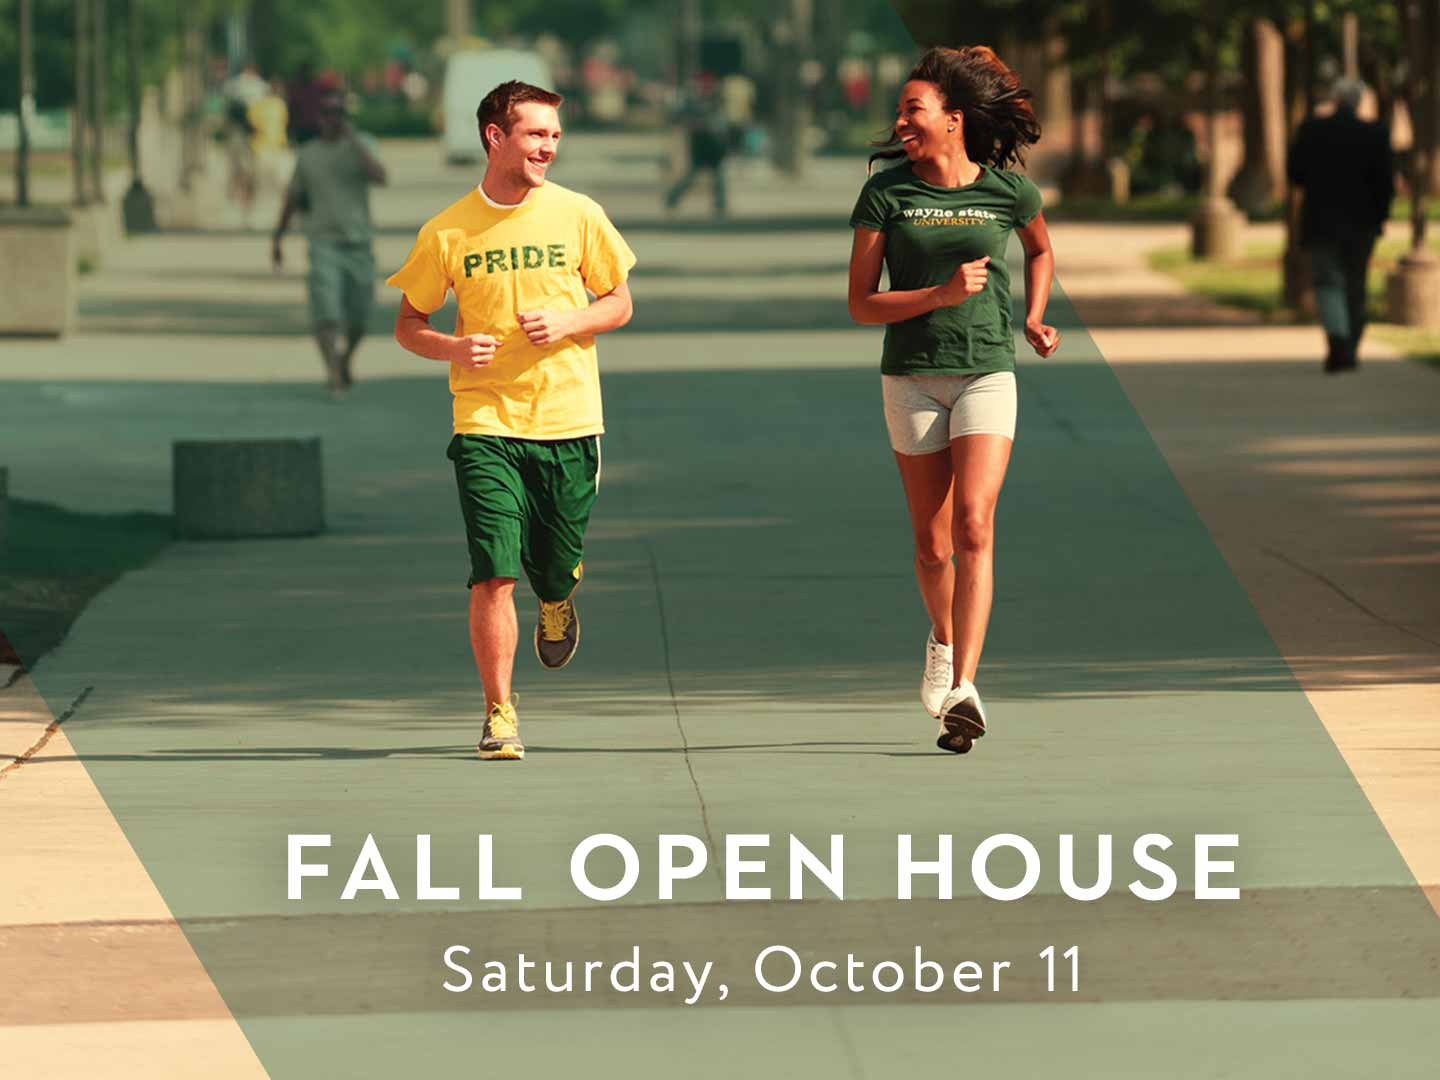 Explore your academic interests and learn more about WSU